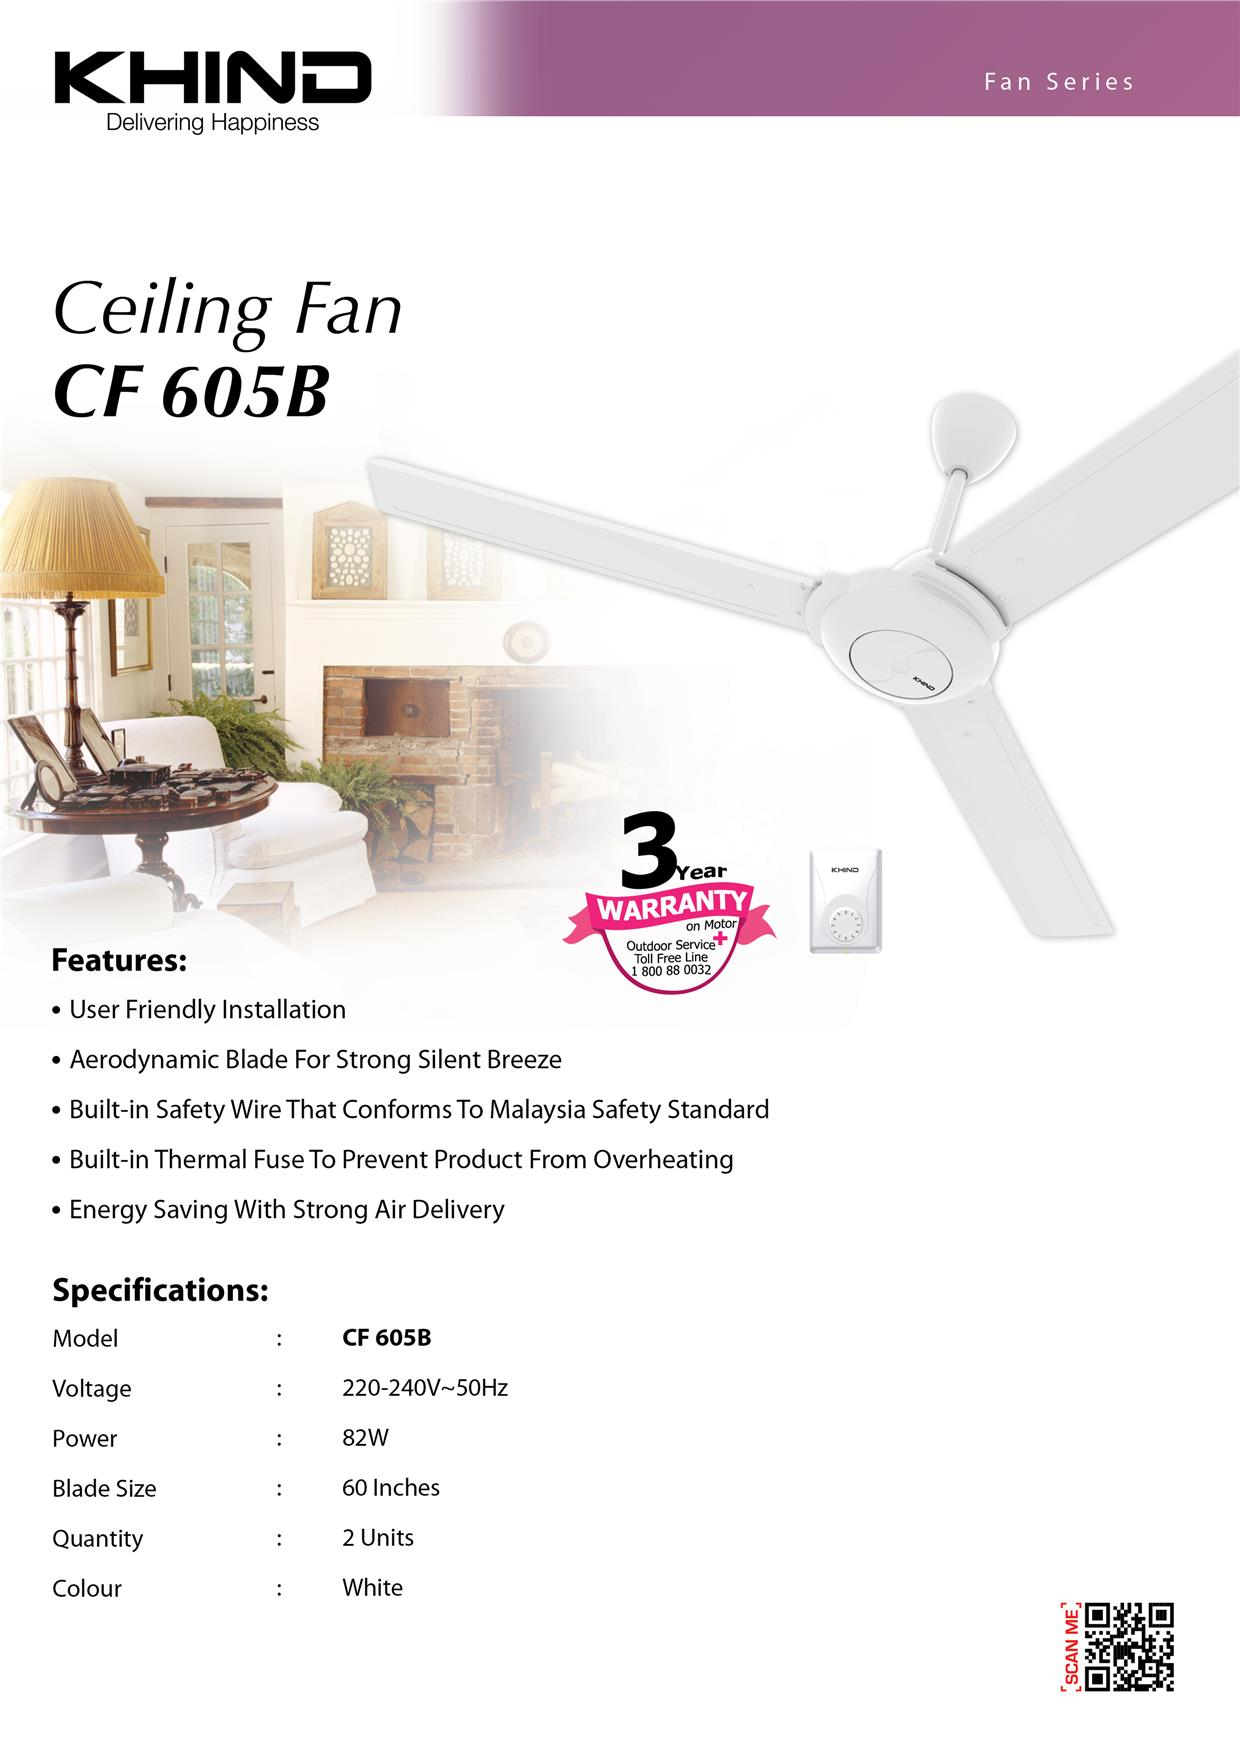 Khind Ceiling Fan CF605B with Energy Saving & Strong Air Delivery